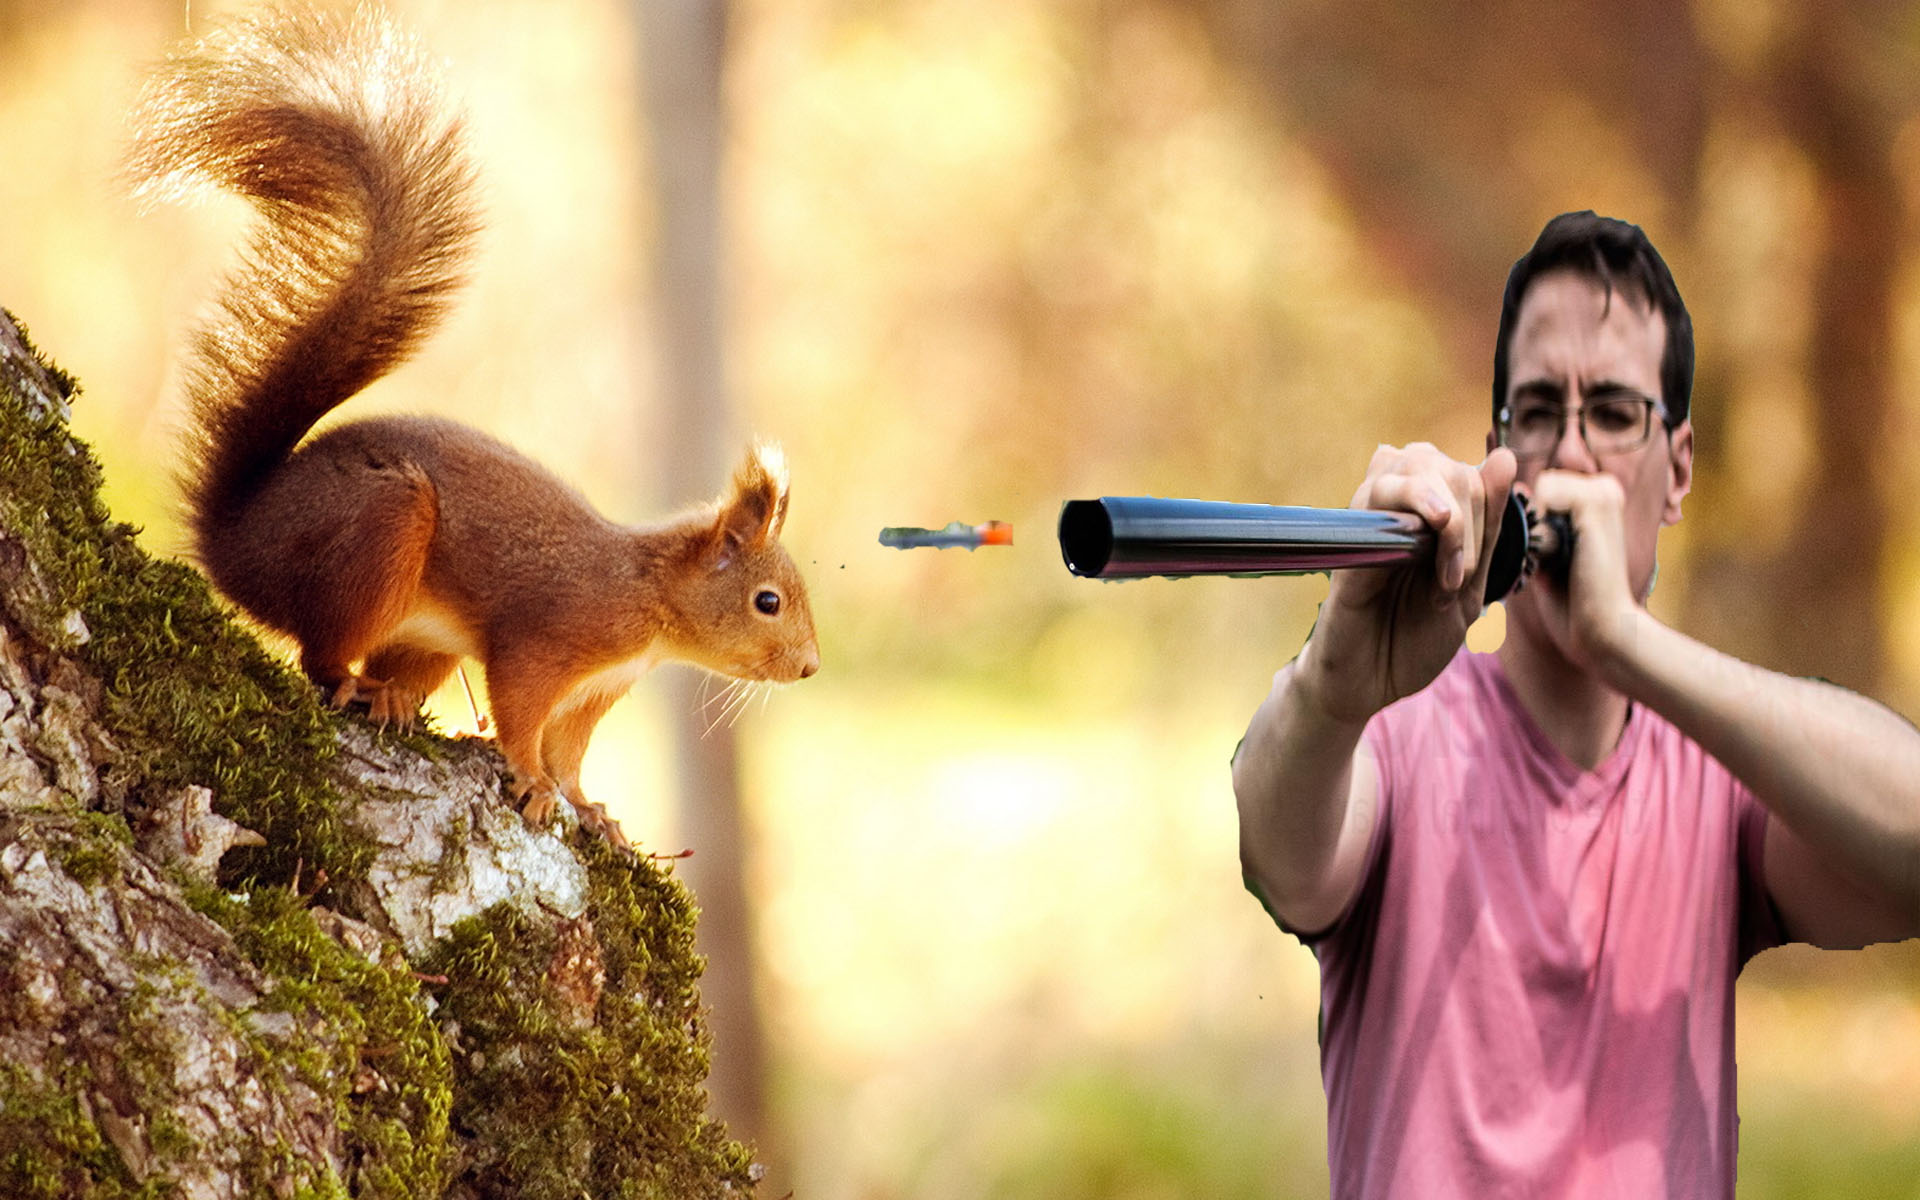 hunting a squirrel with a blowgun